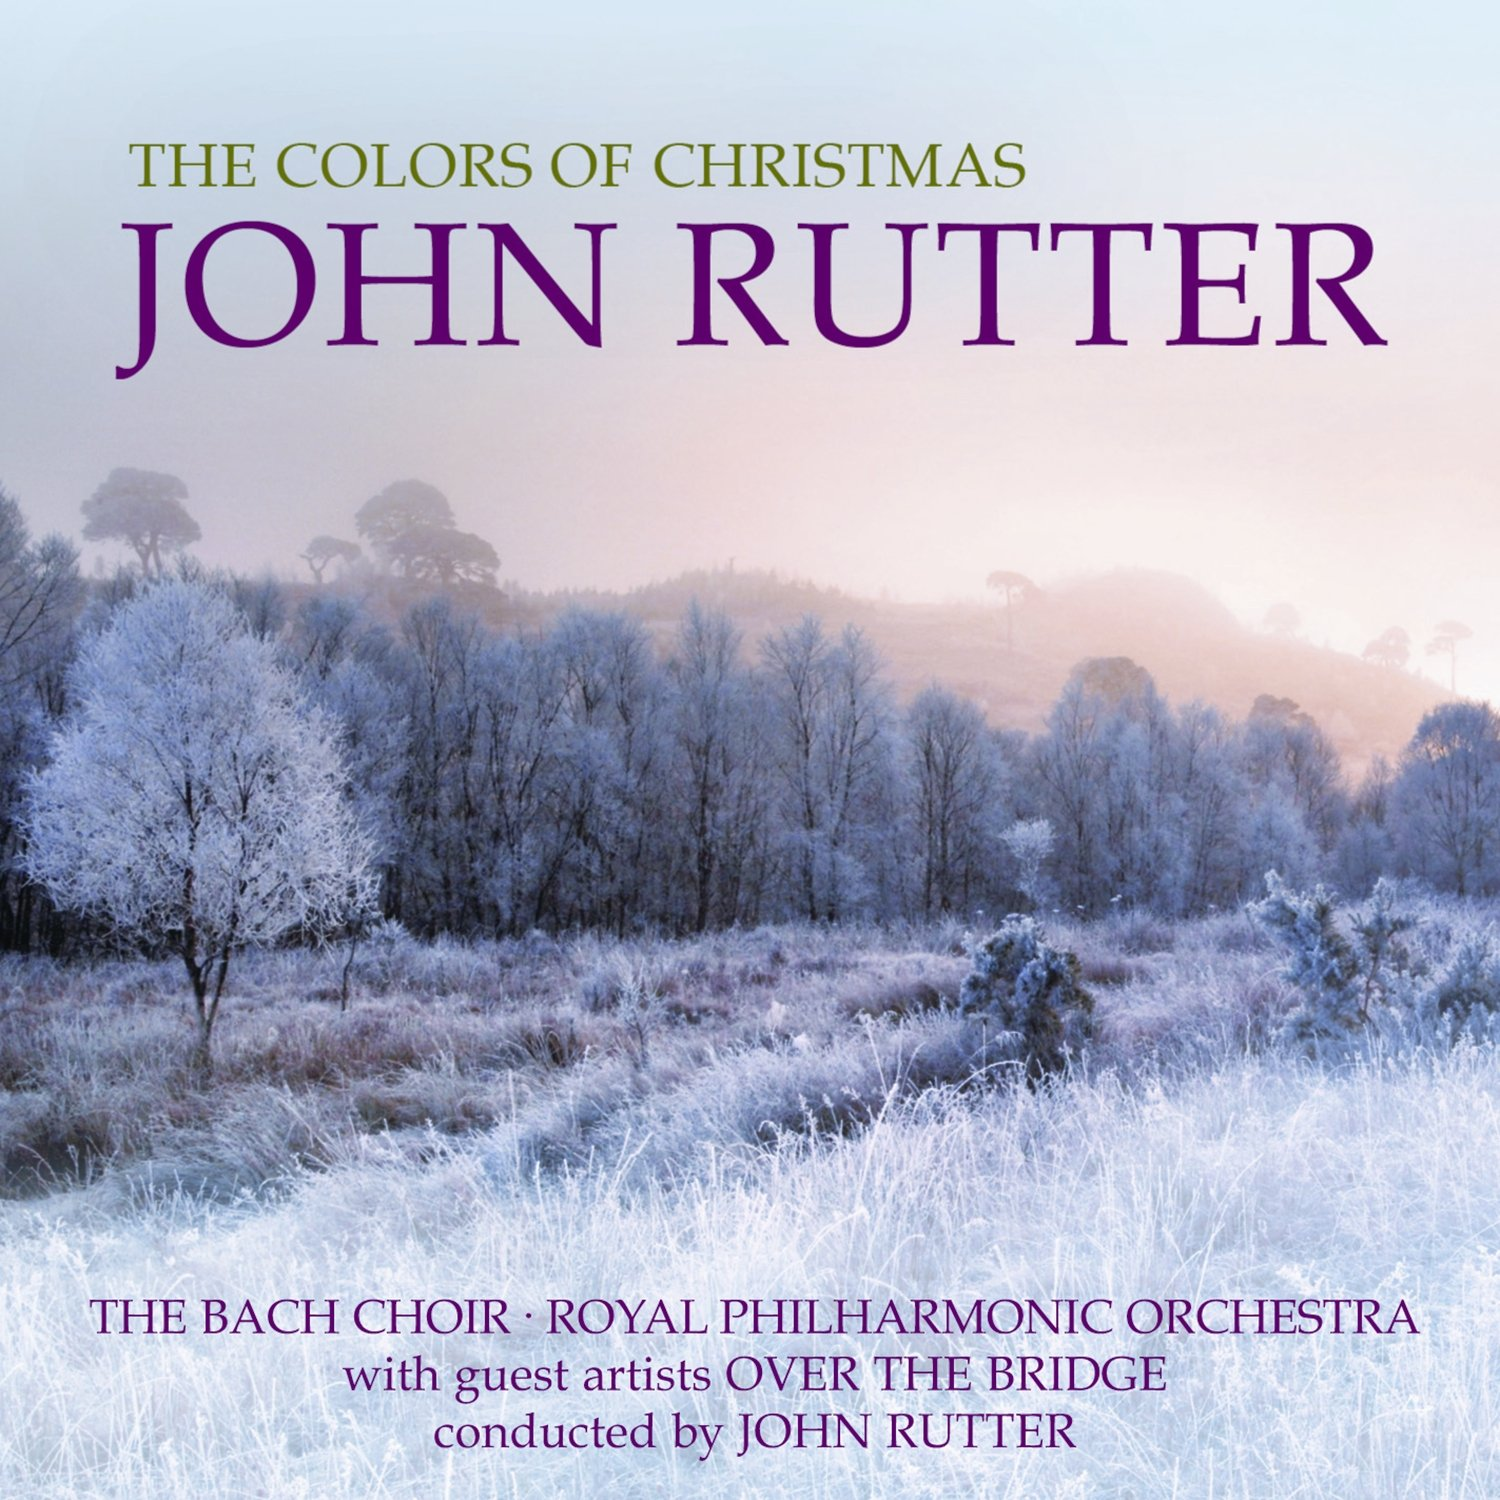 John Rutter - The Colors Of Christmas - Amazon.com Music